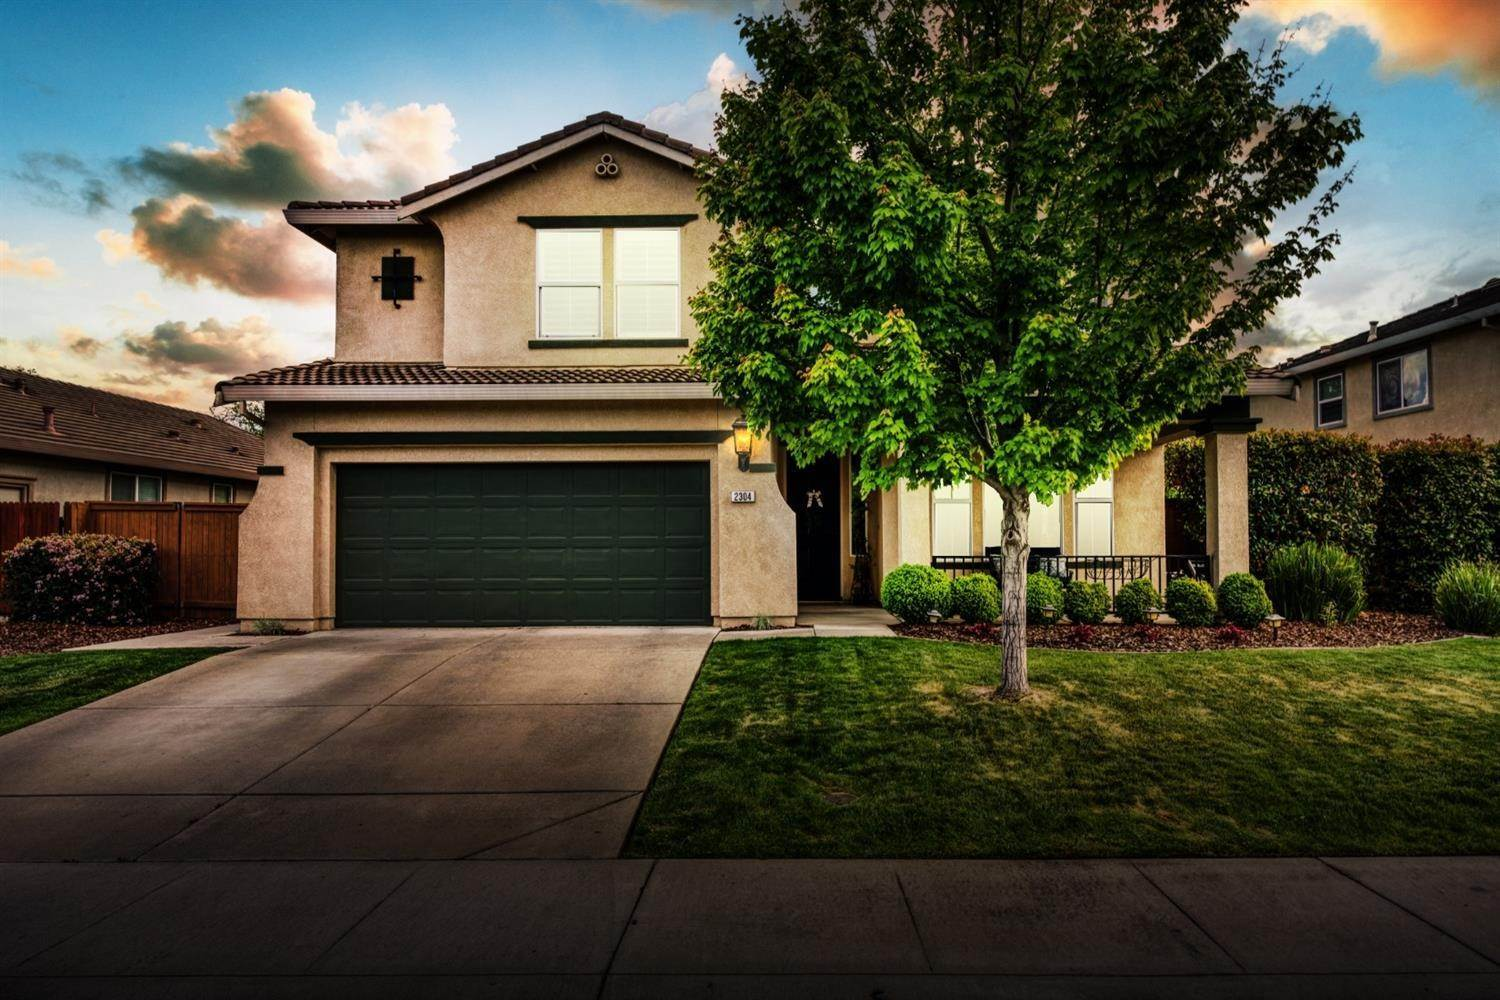 Single Family Homes for Active at 2304 Clearbrook Circle Roseville, California 95747 United States